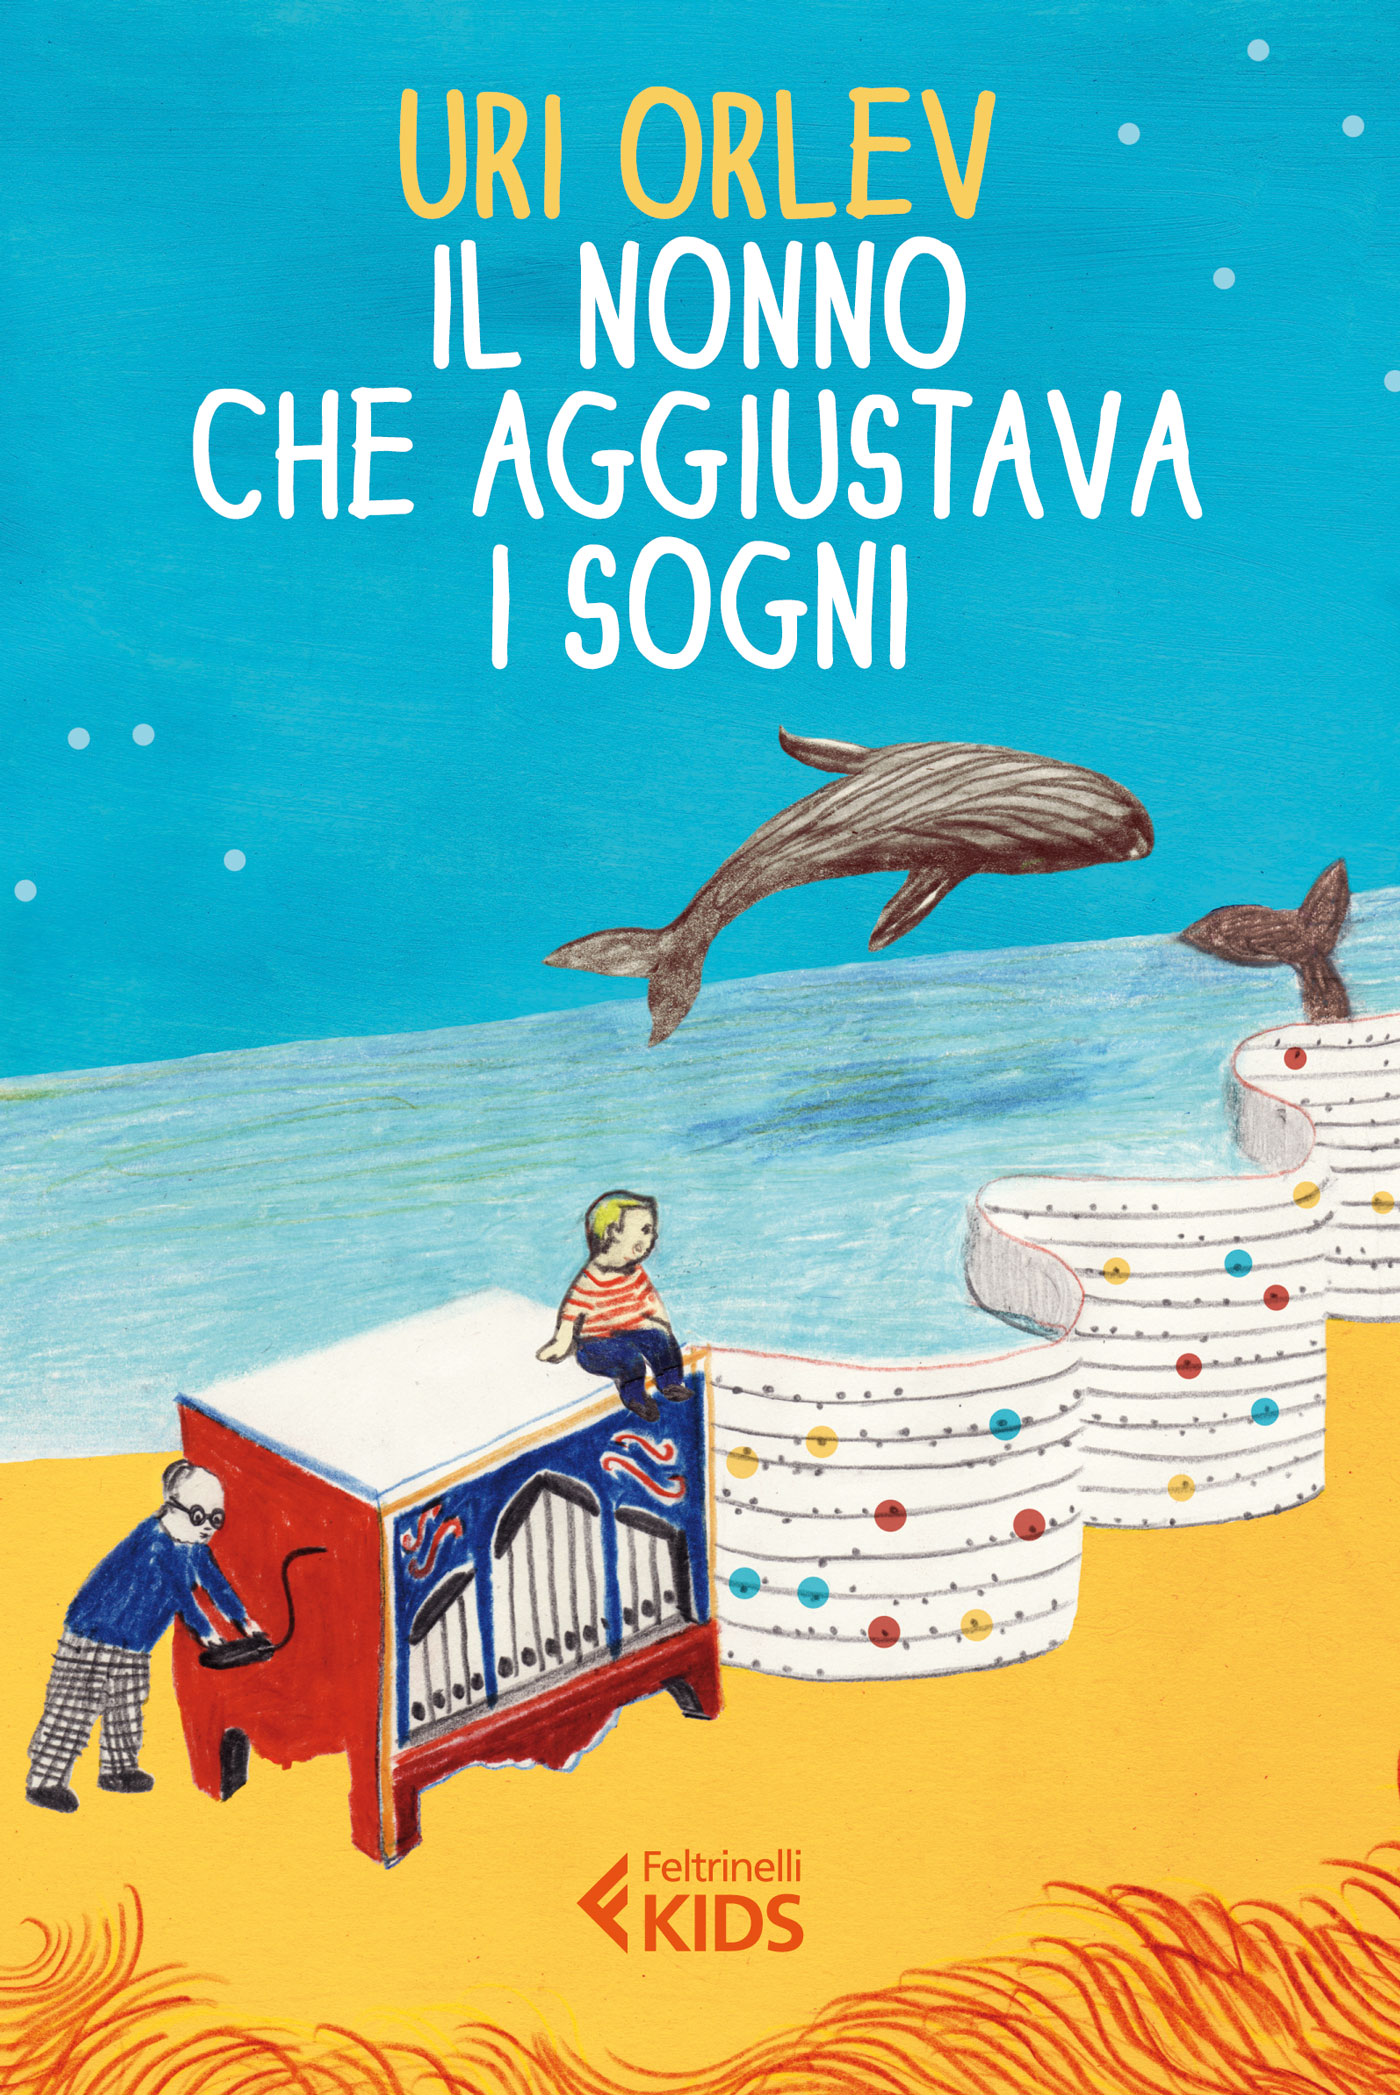 http://www.feltrinellieditore.it/media/copertina/quarta/98/9788807922398_quarta.jpg